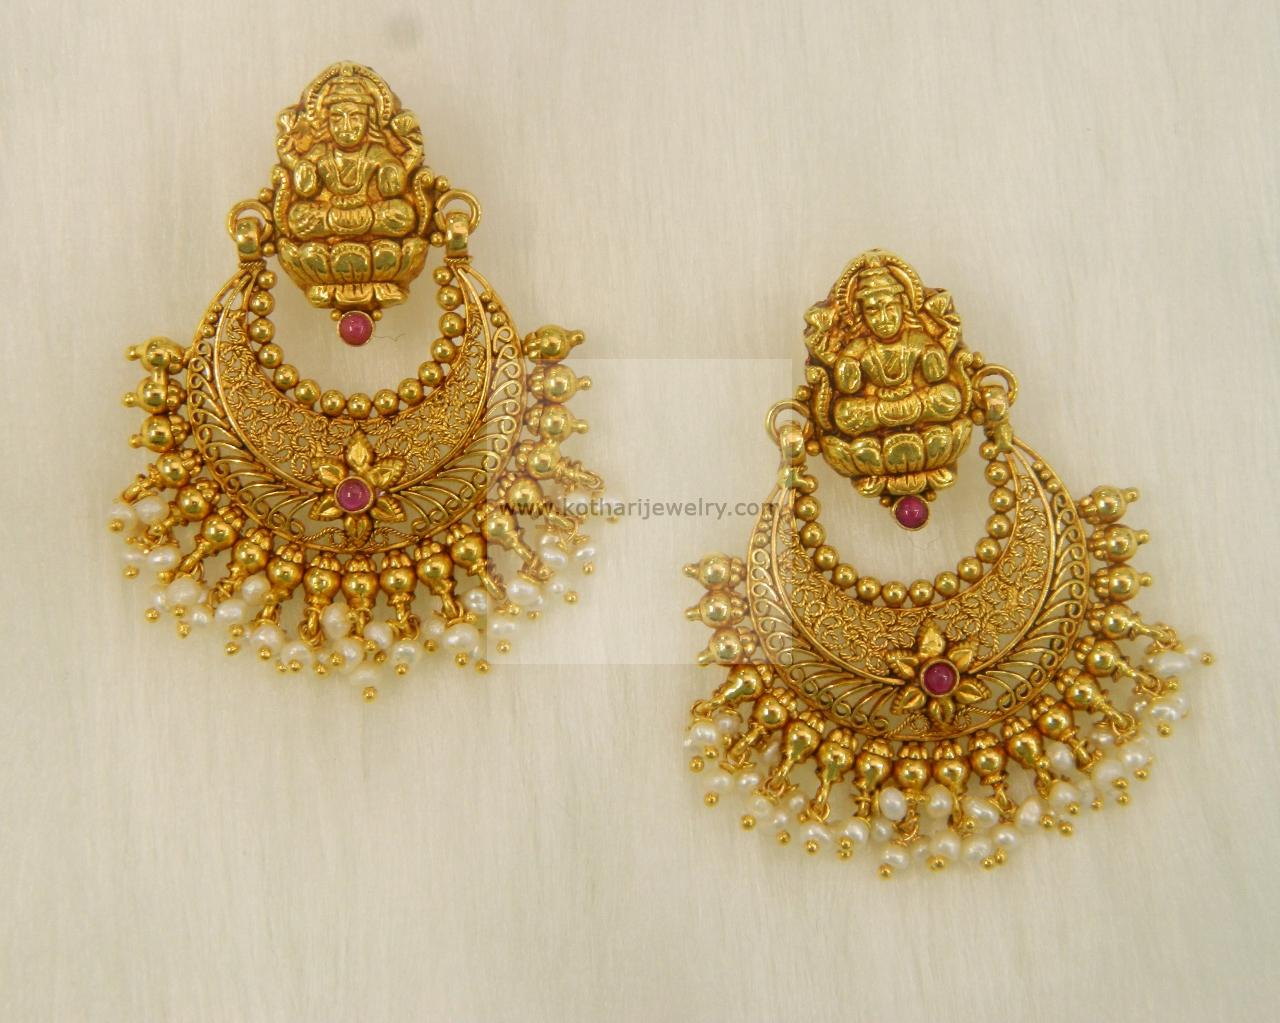 designs south lalithaa collections kumar gold women for jewellery earrings buy kiran indian